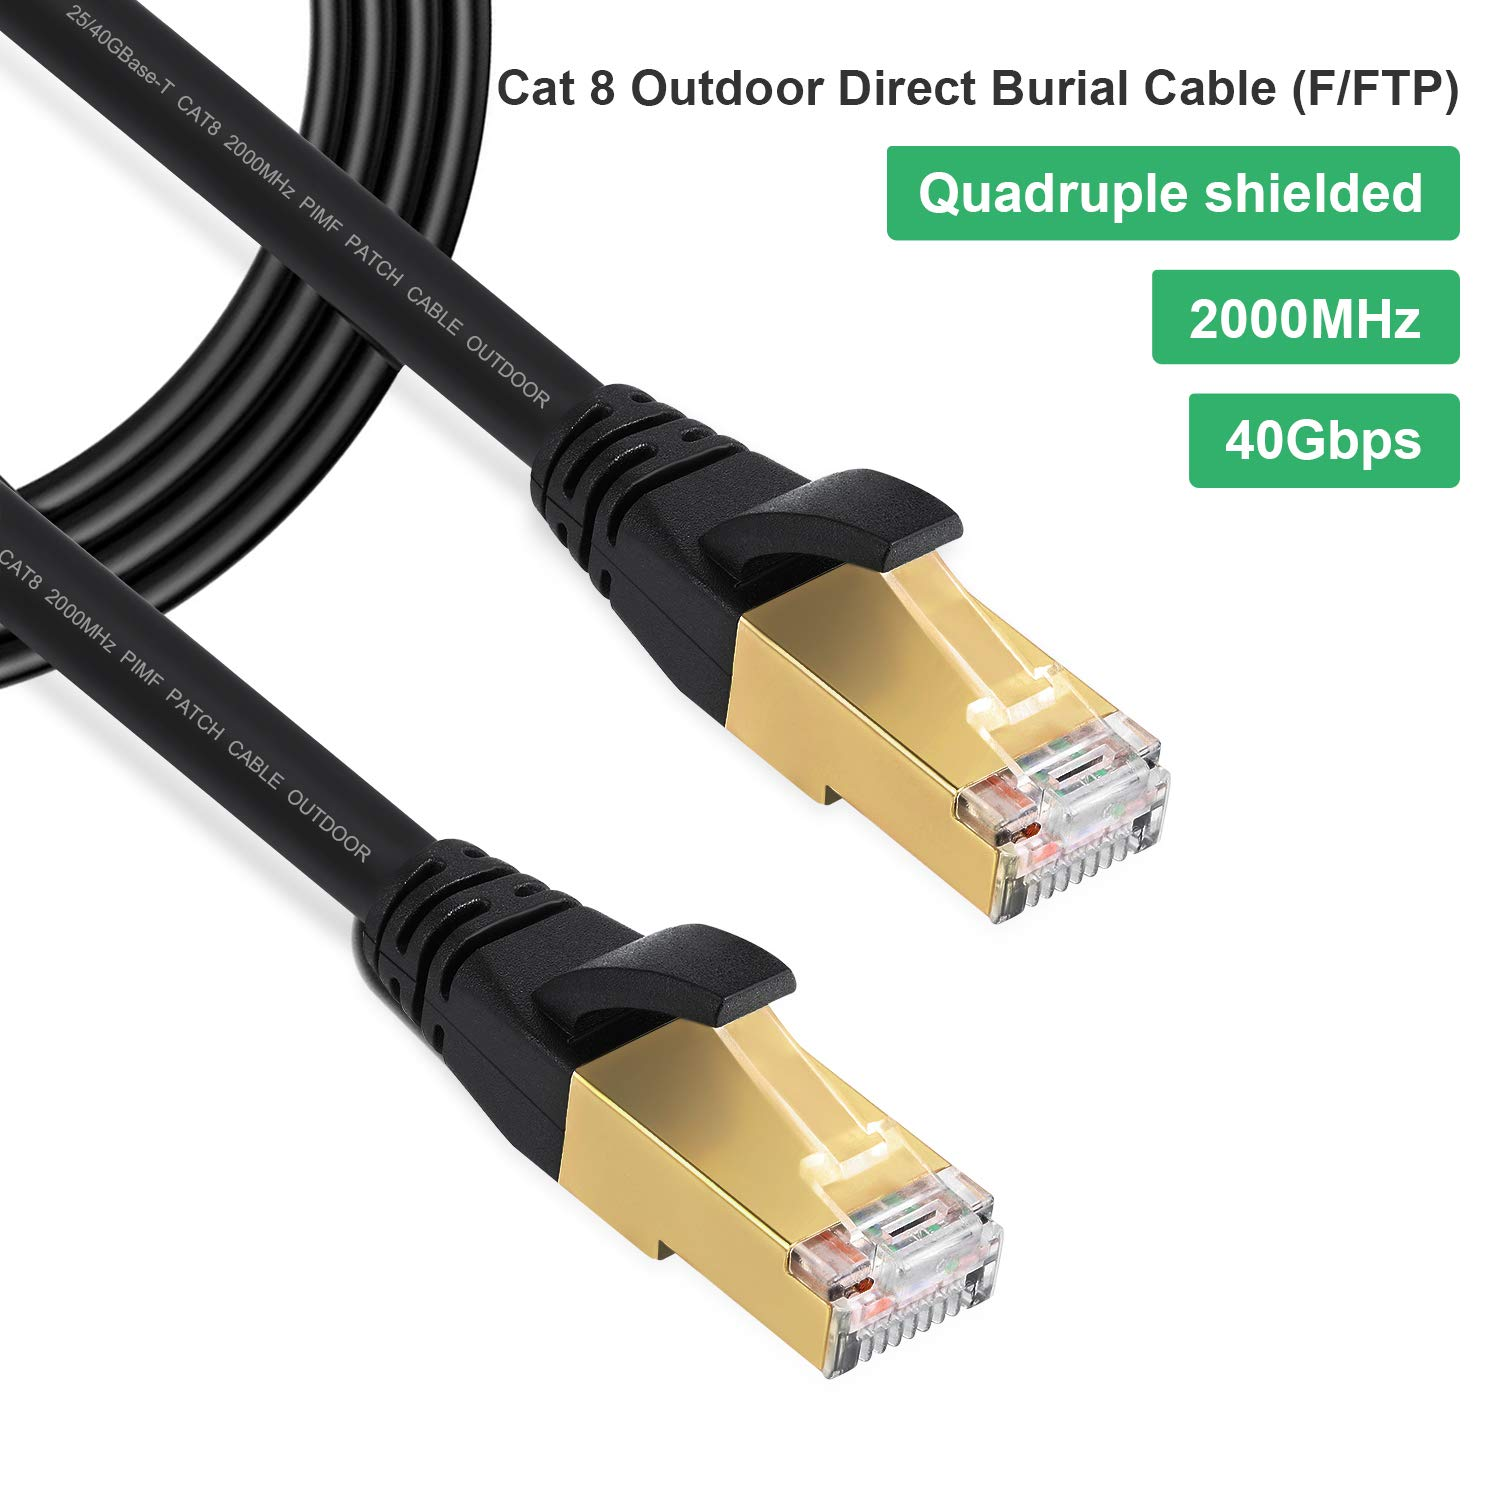 Cat8 Cable Ethernet 10FT LAN High-Speed,Gigabit Cat7 Heavy Duty Internet Network Cord,High Speed FFTP LAN Cables Waterproofed UV Resistant with Gold Plated RJ45 Connector for Router, Modem, Gaming by Phizli